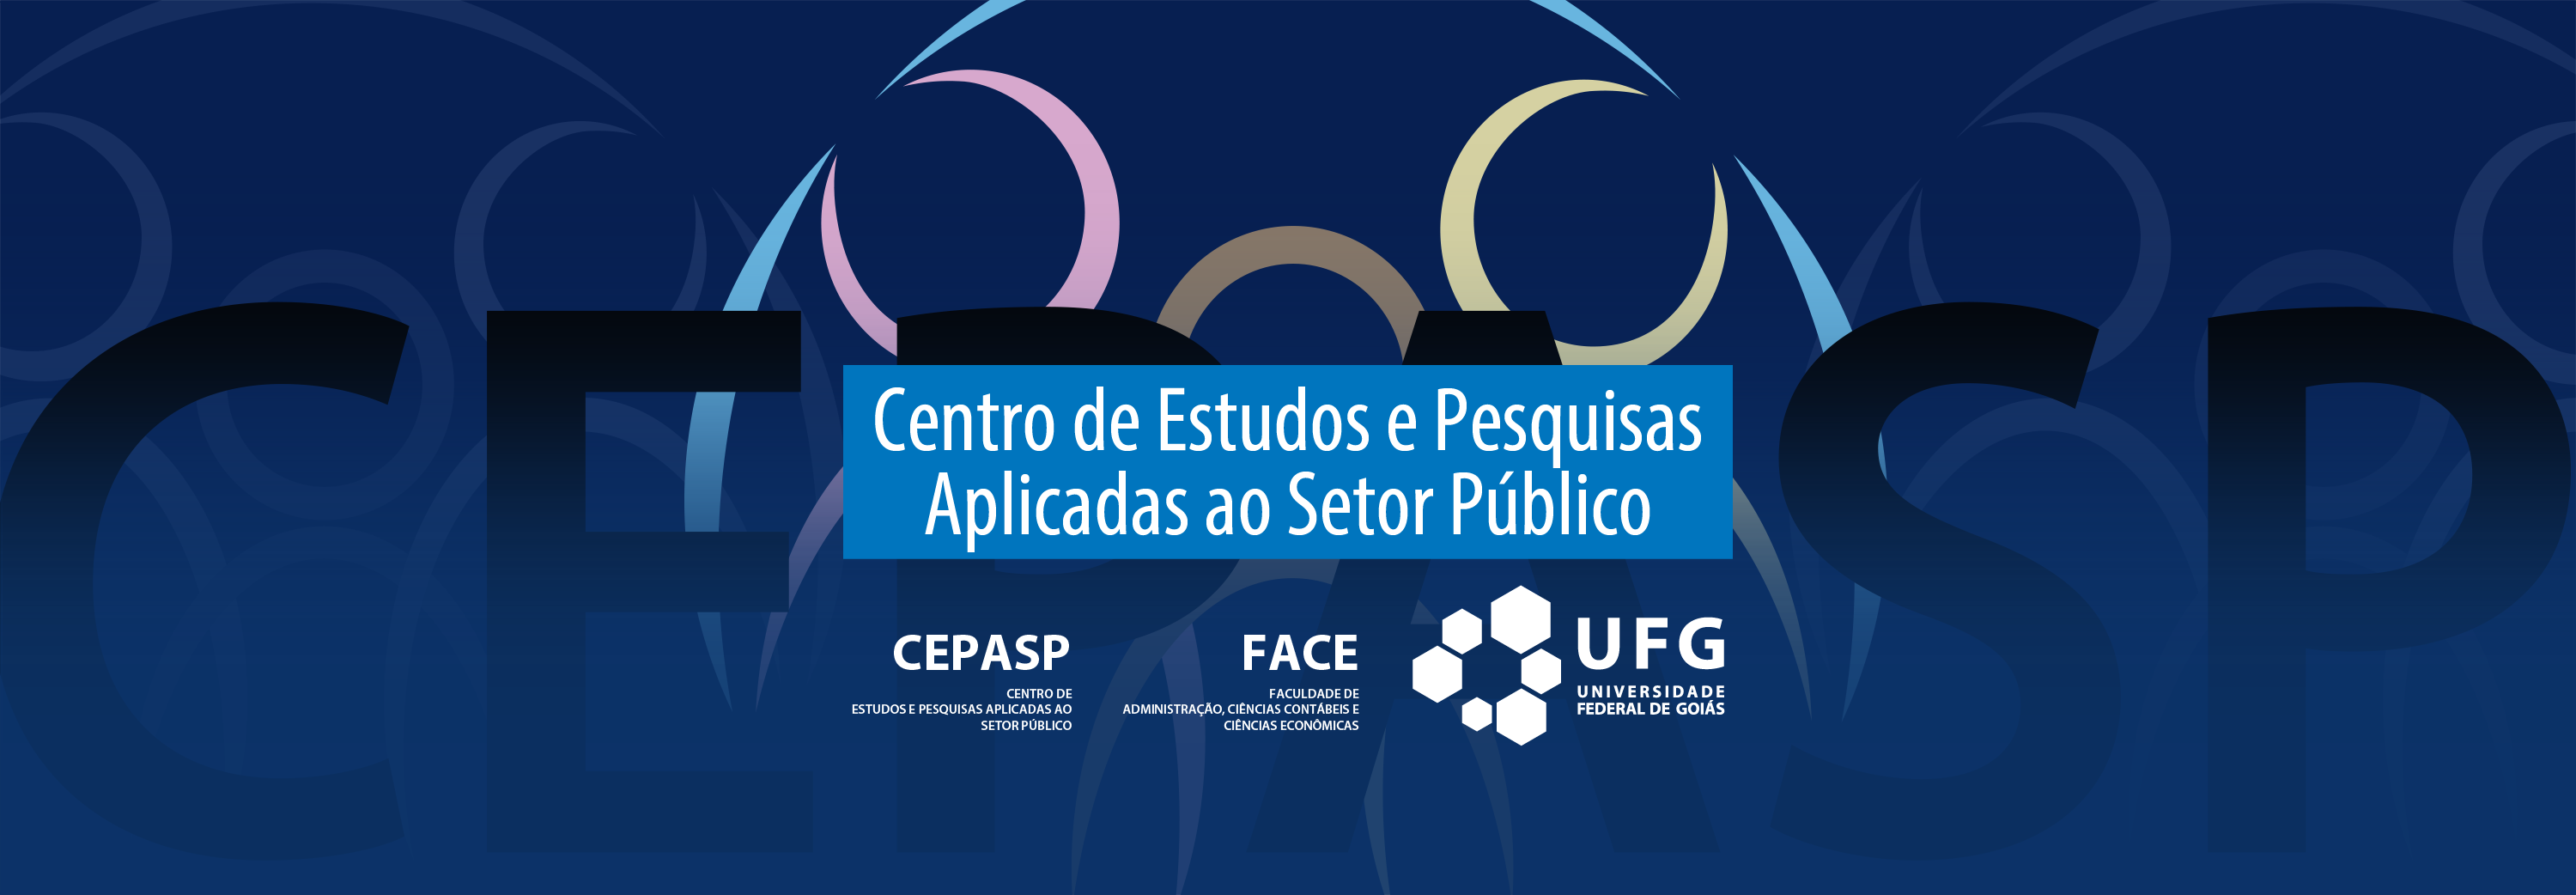 CEPASP_FACE_UFG